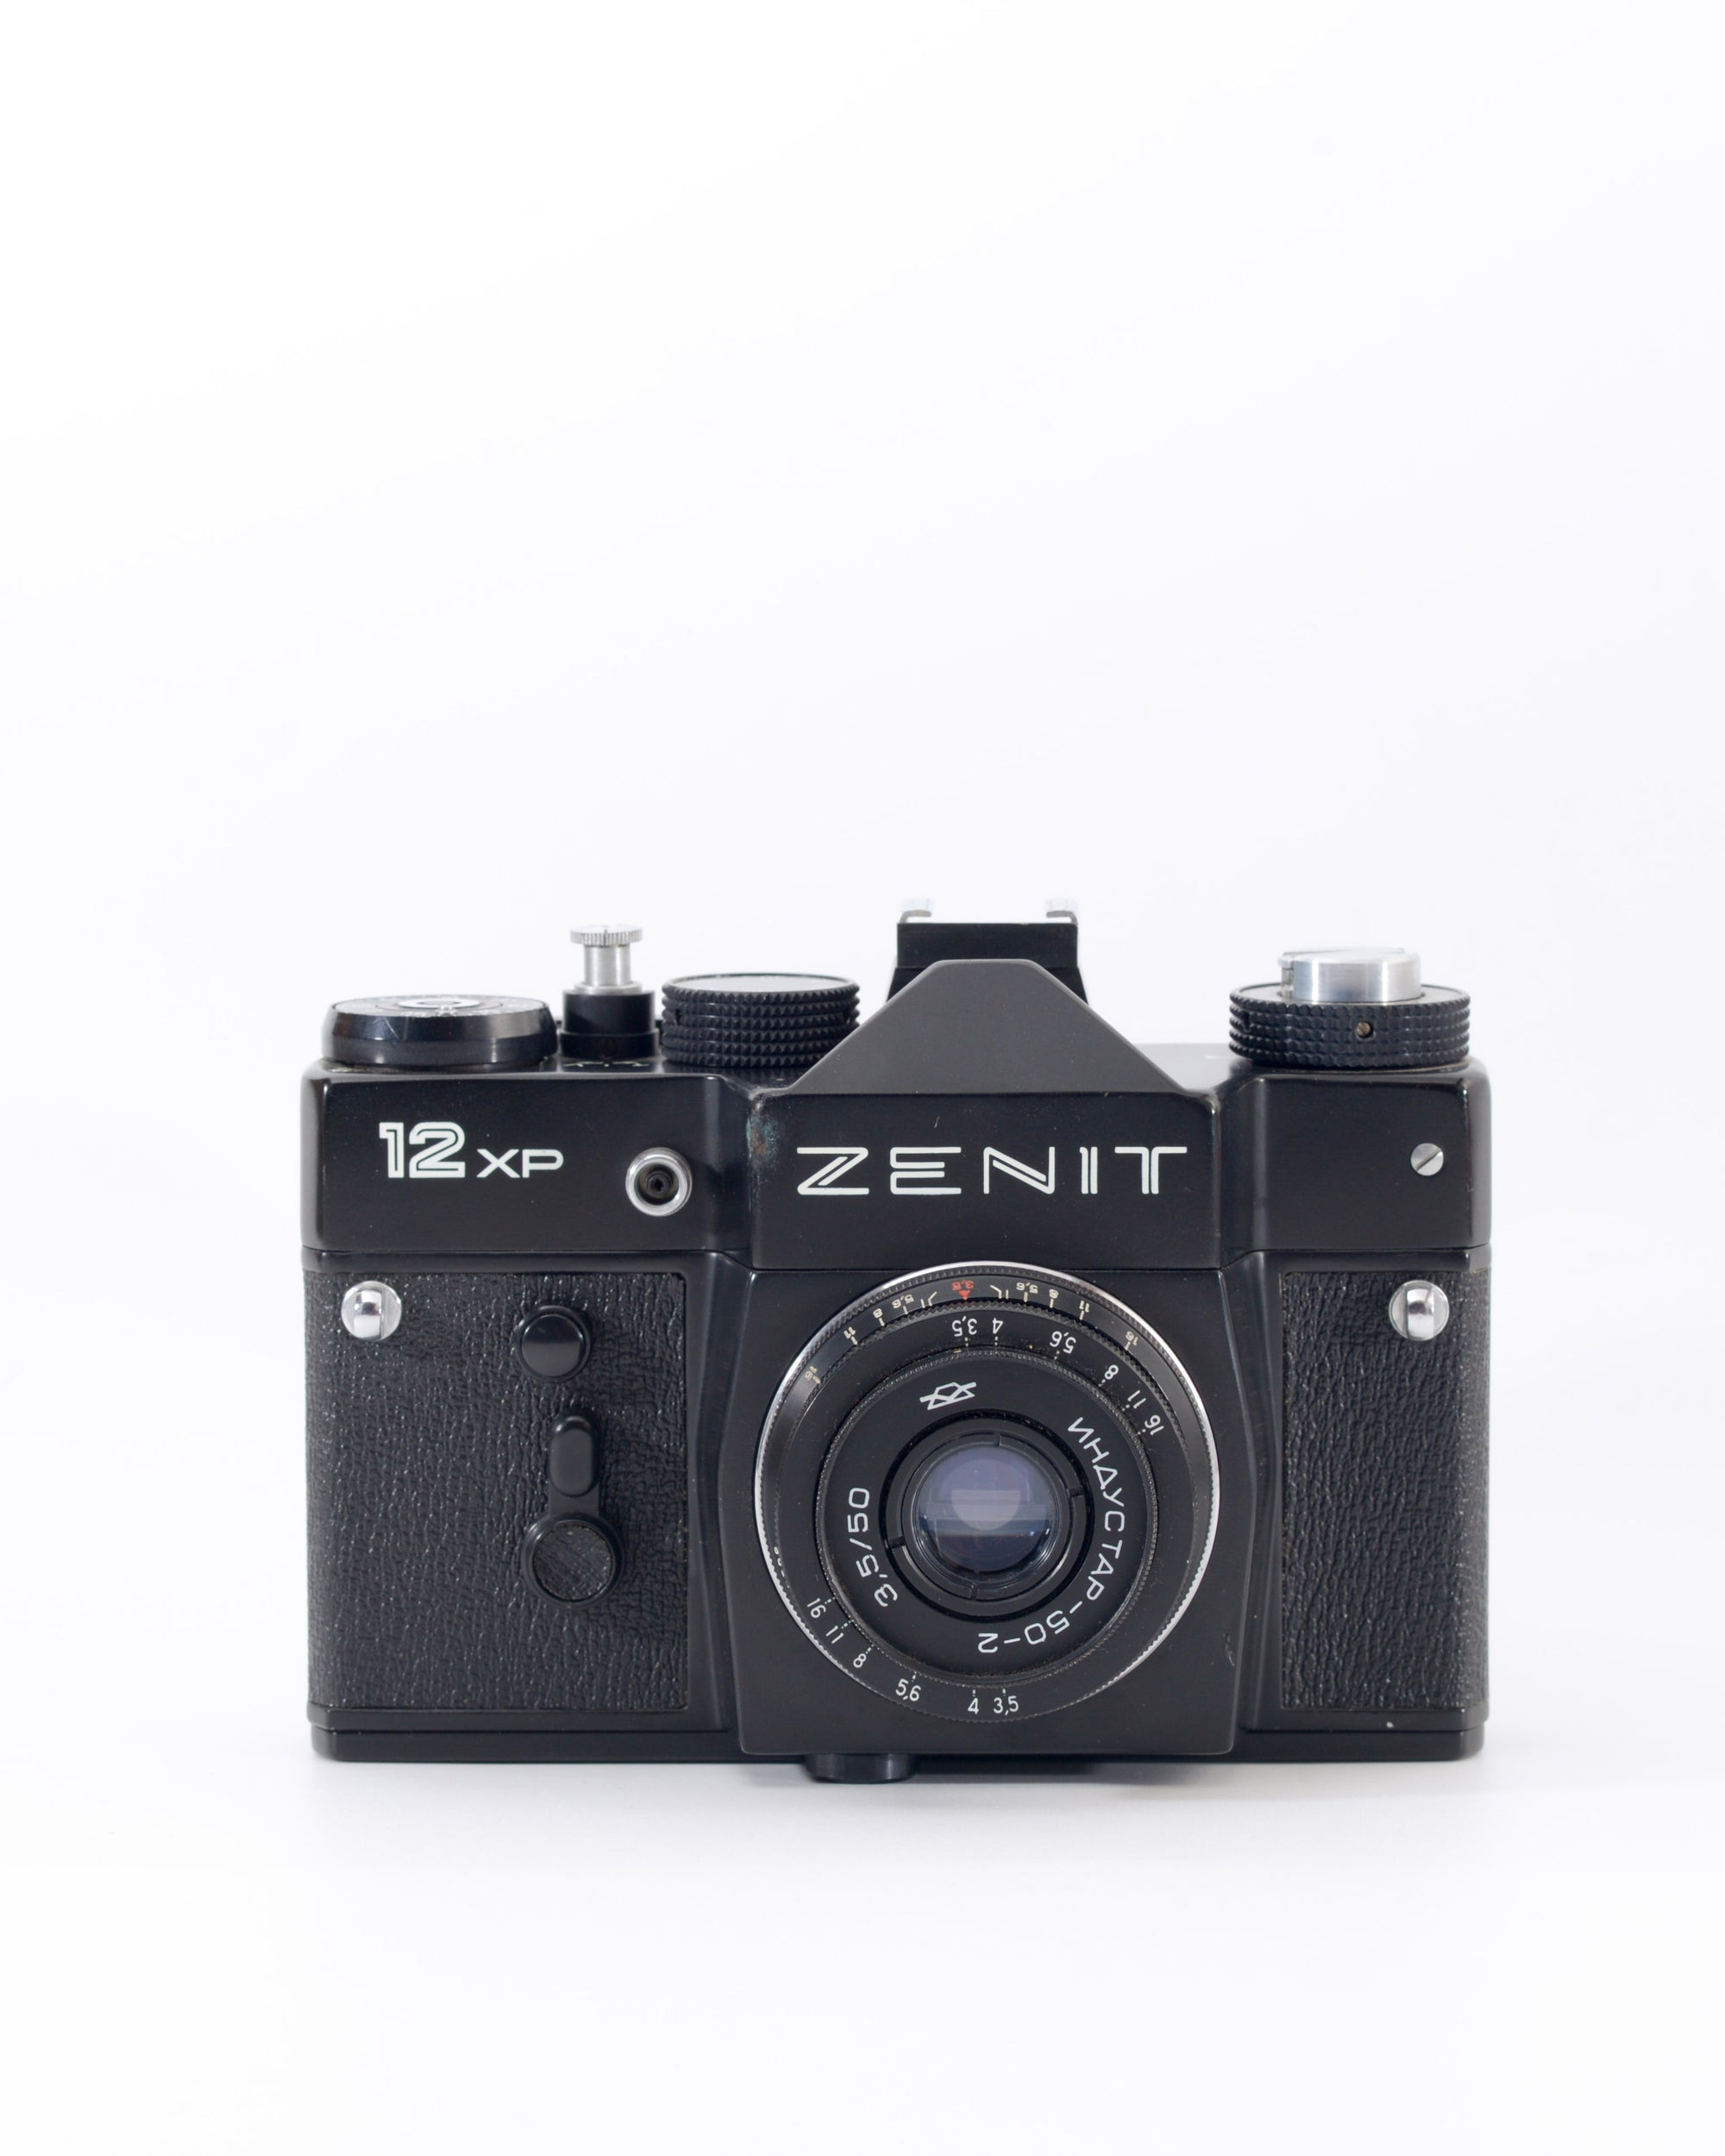 Zenit 12XP 35mm SLR Film Camera with 50mm f3.5 Lens